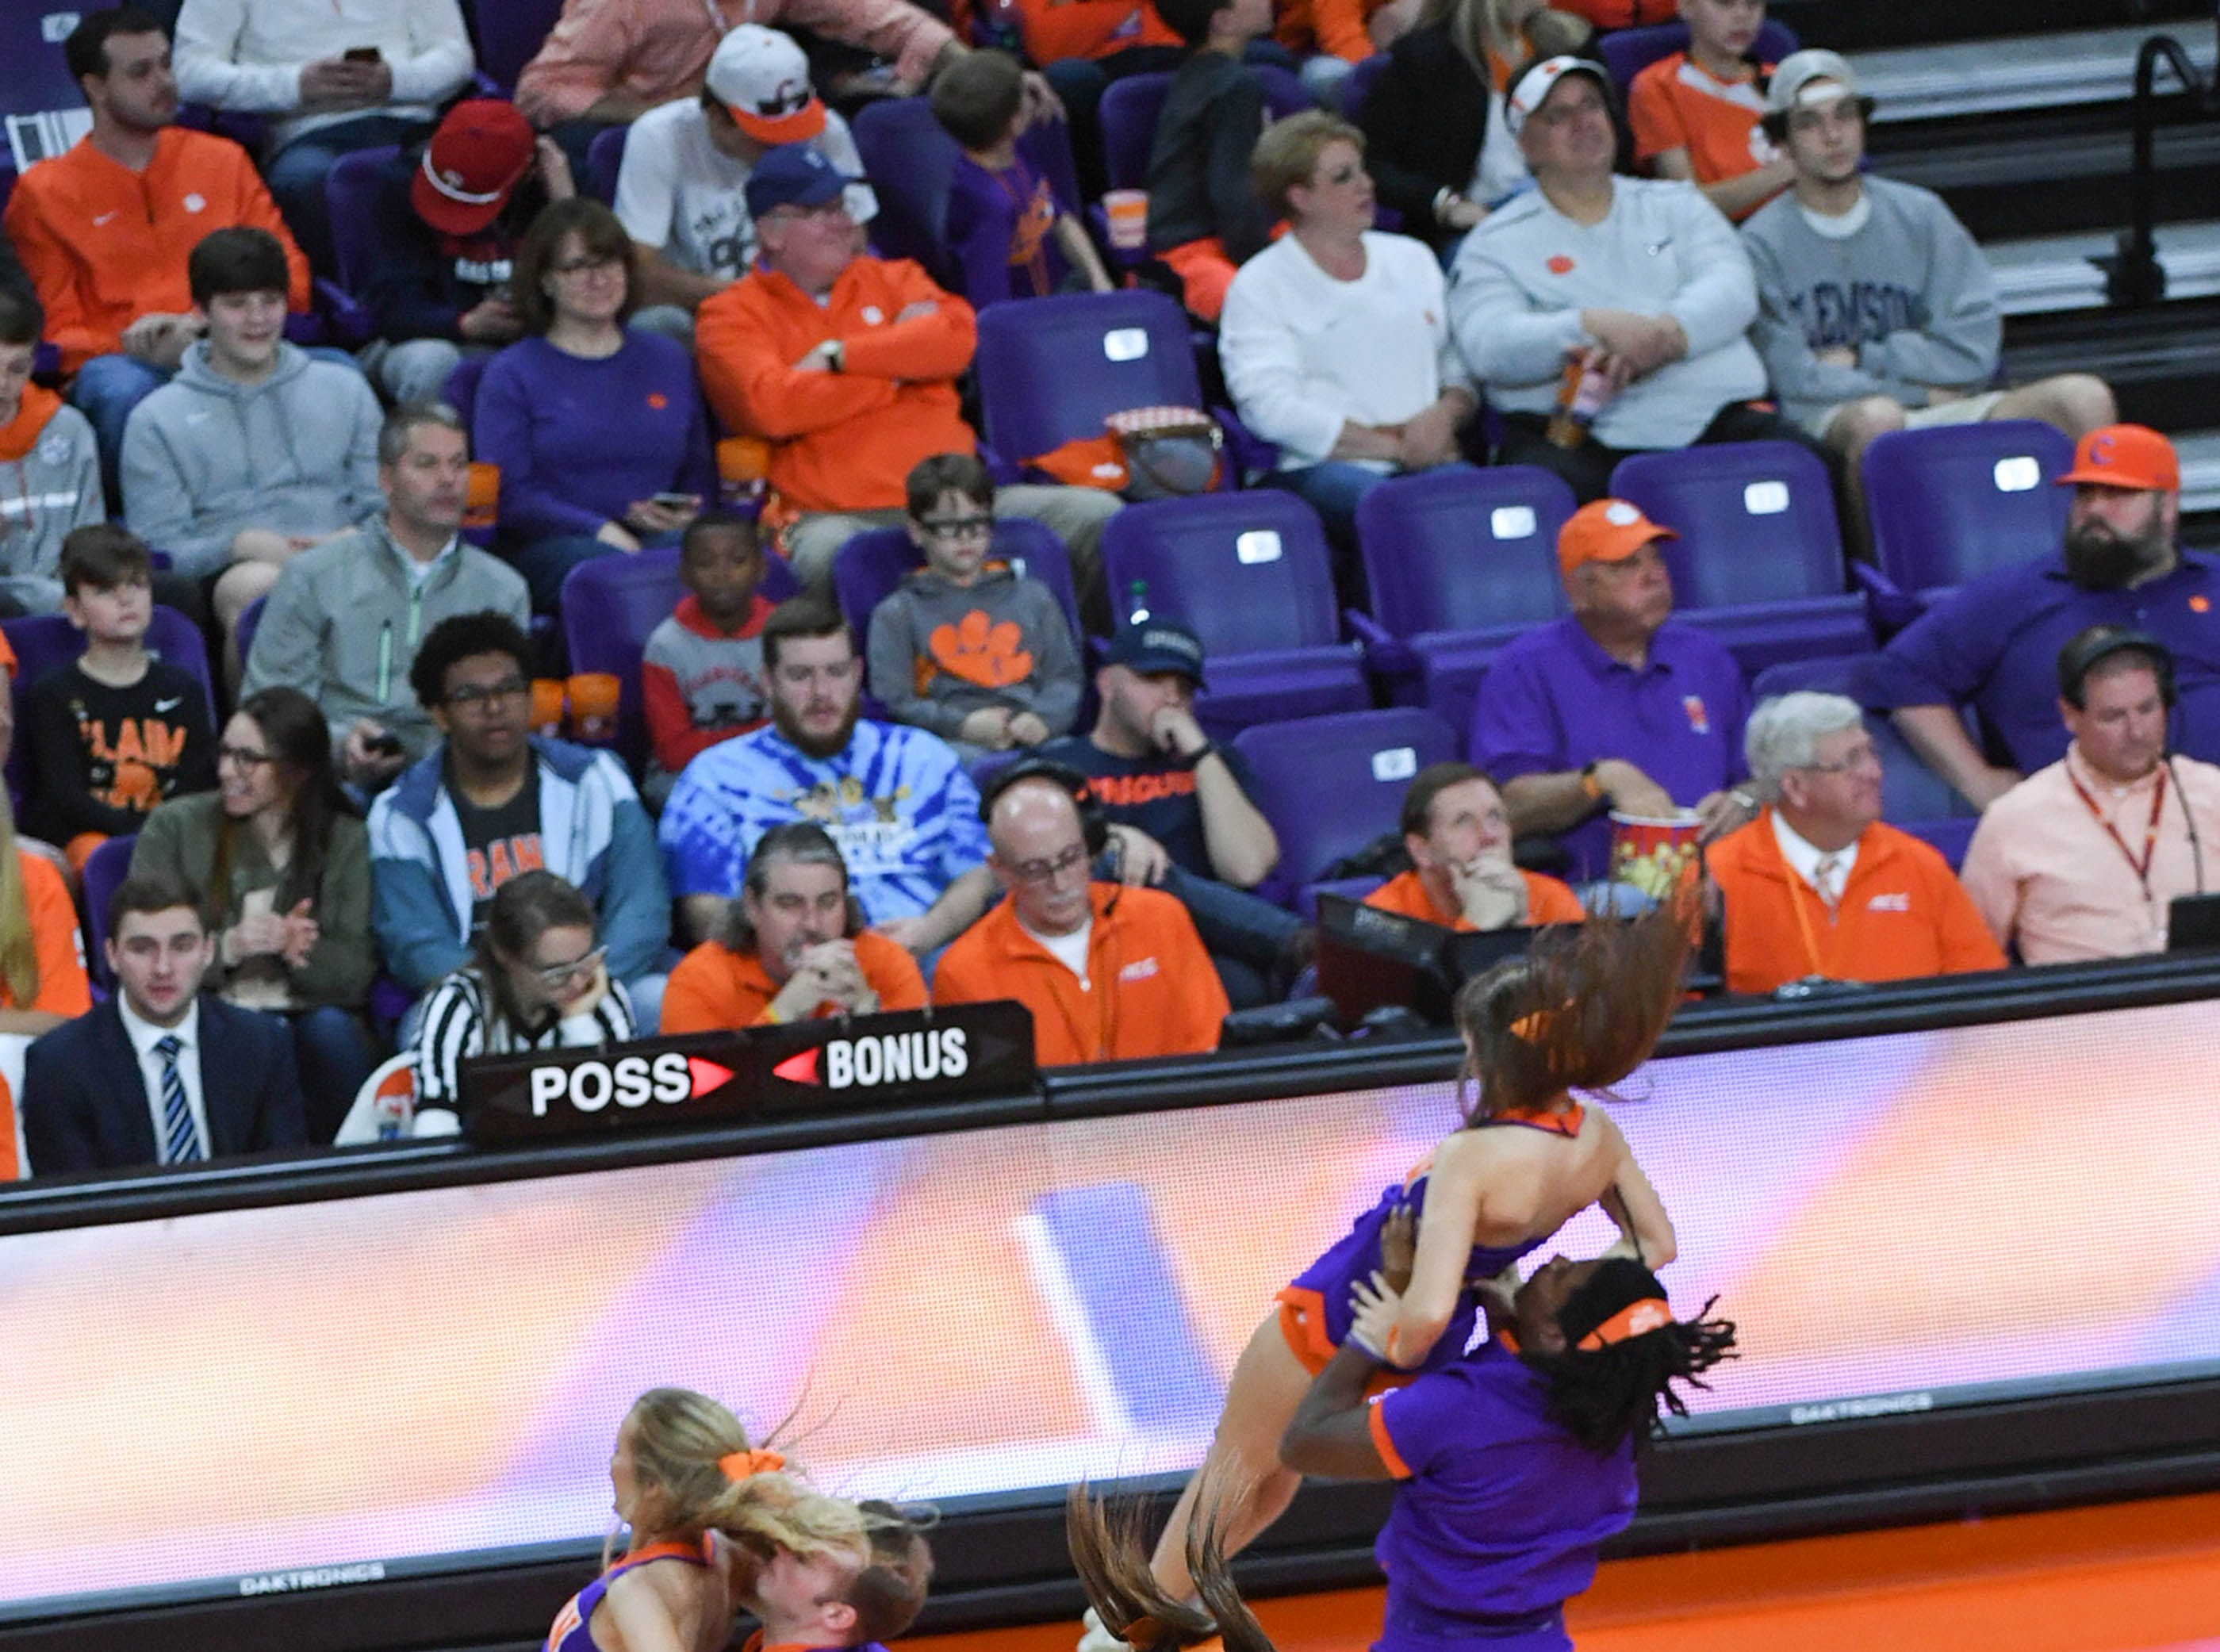 Clemson cheerleaders perform a routine in a break at the Syracuse game, during the first half in Littlejohn Coliseum in Clemson Saturday, March 9, 2019.